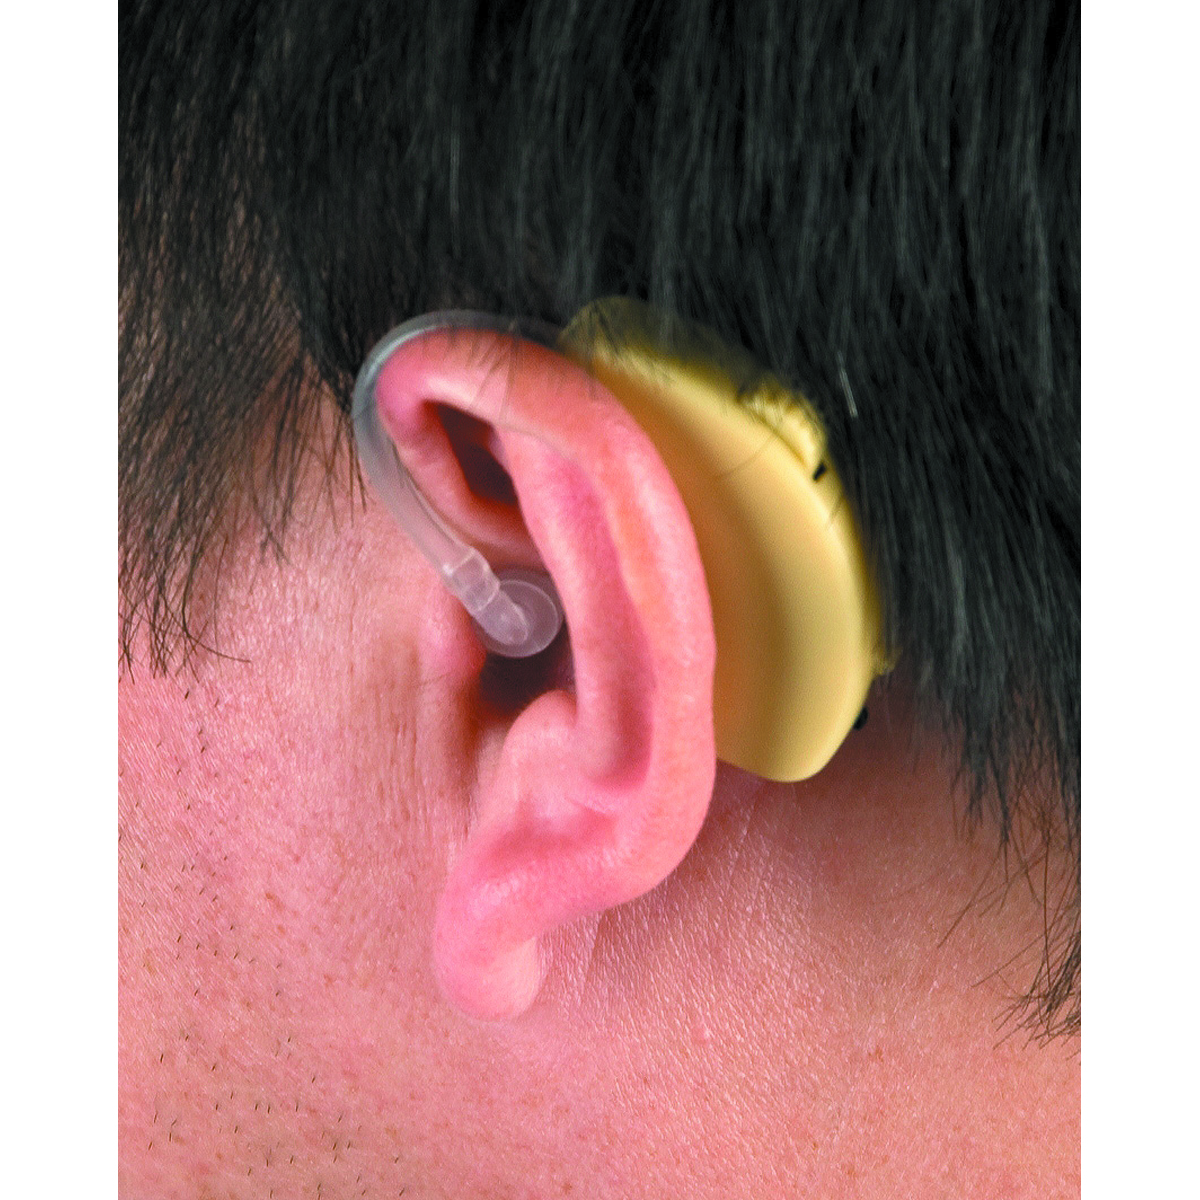 Ear Sound Amplifier Save On This Ultra How To Build Hearing Aid